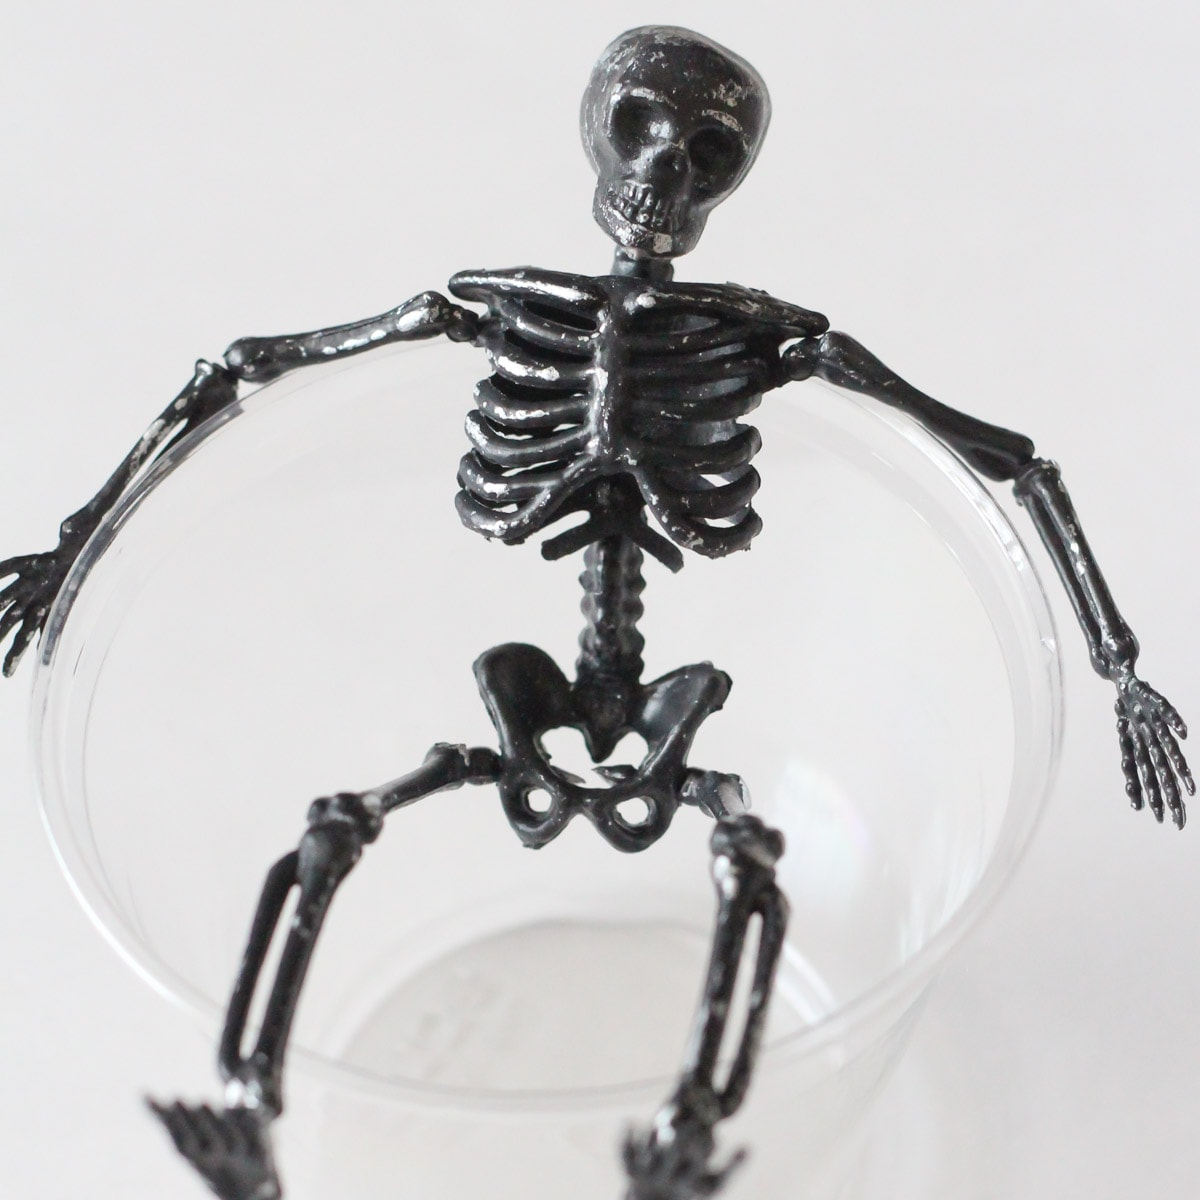 Small black skeleton and clear plastic cup